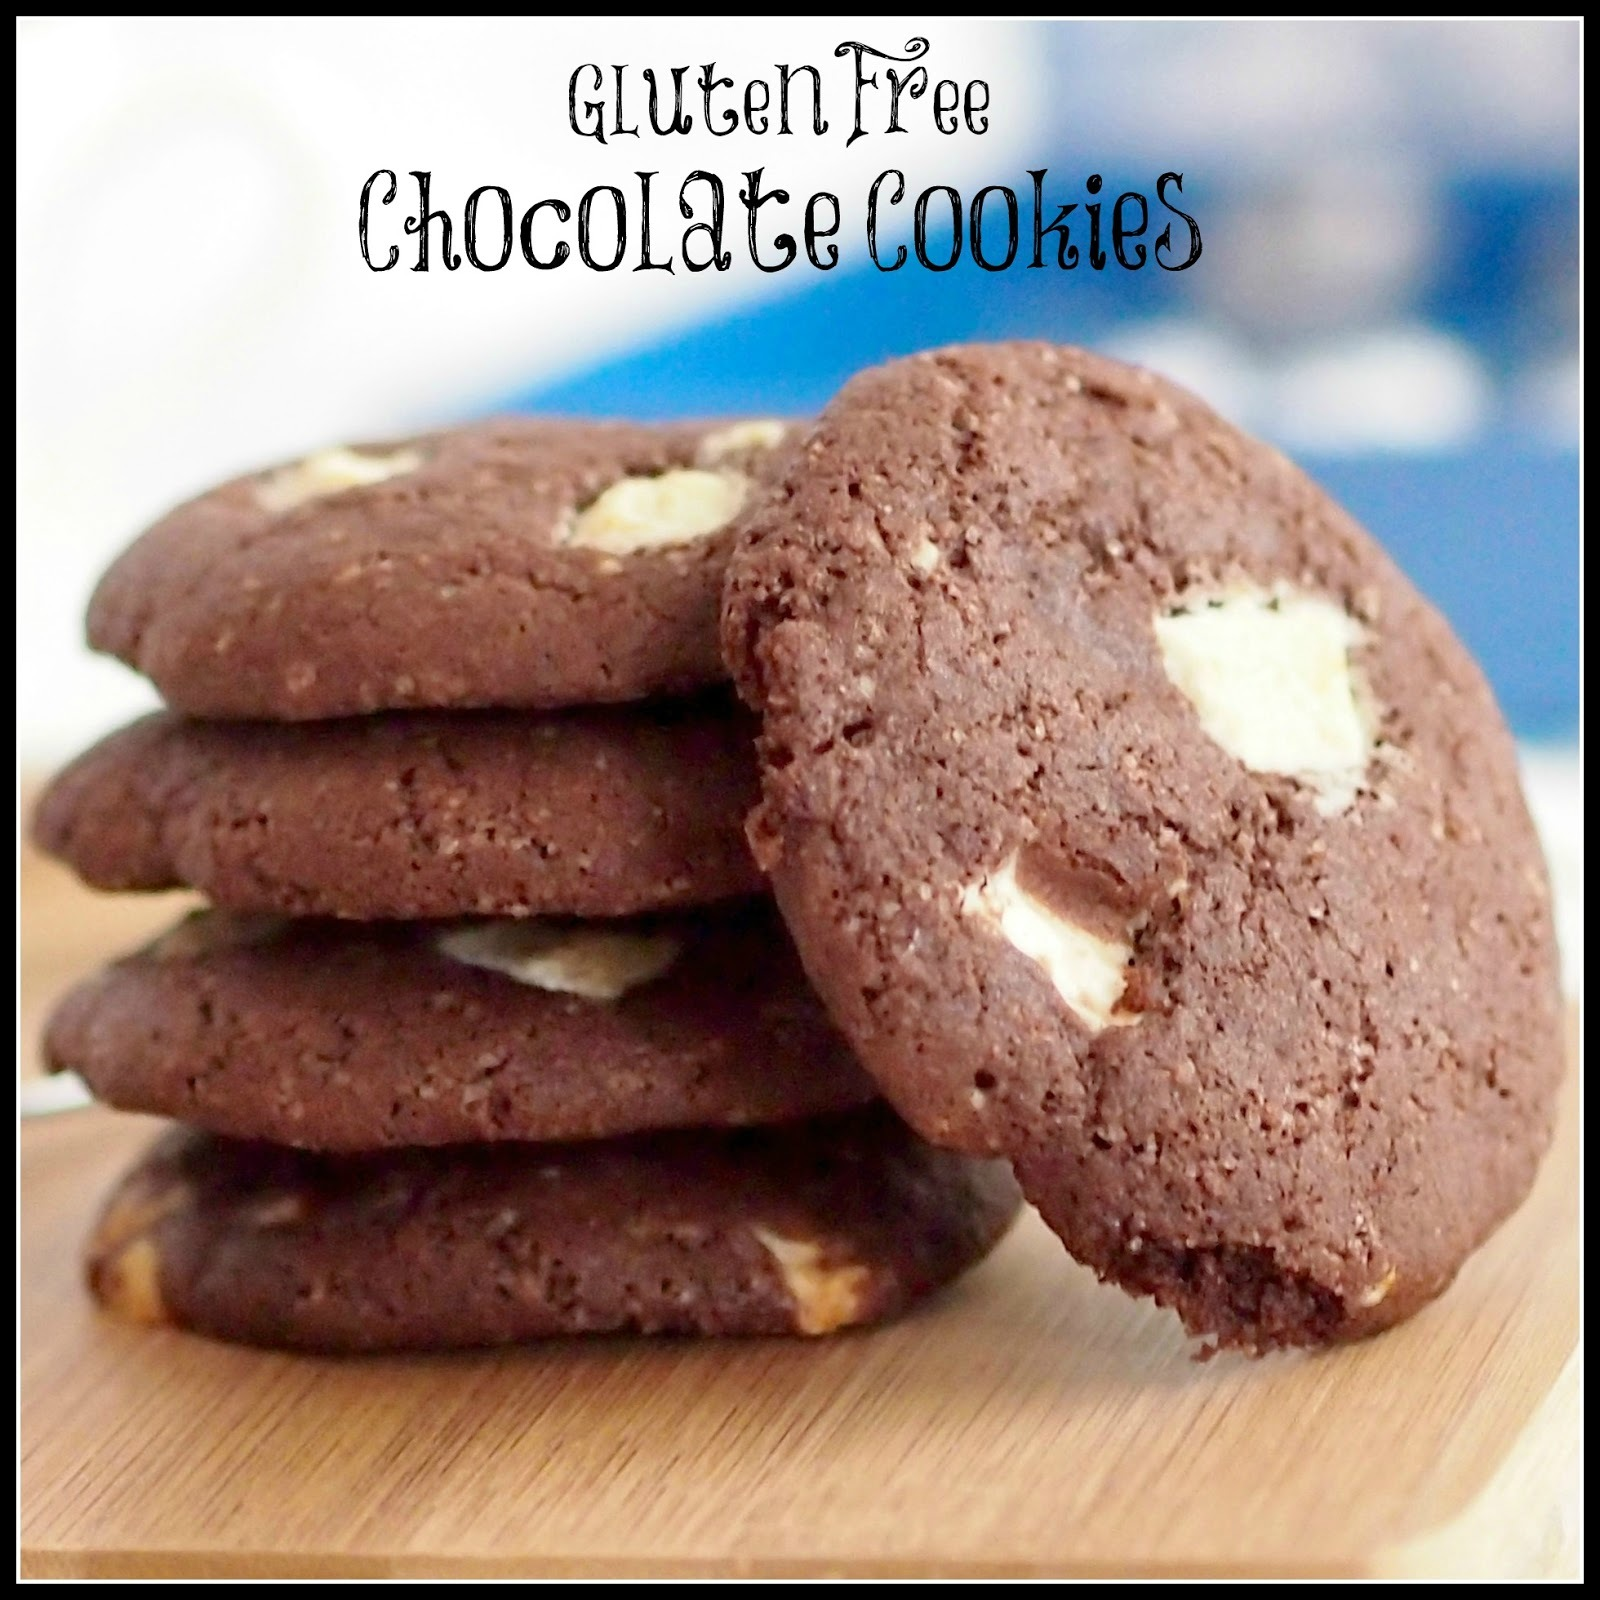 Gluten Free Chocolate Cookies with White Chocolate Chips